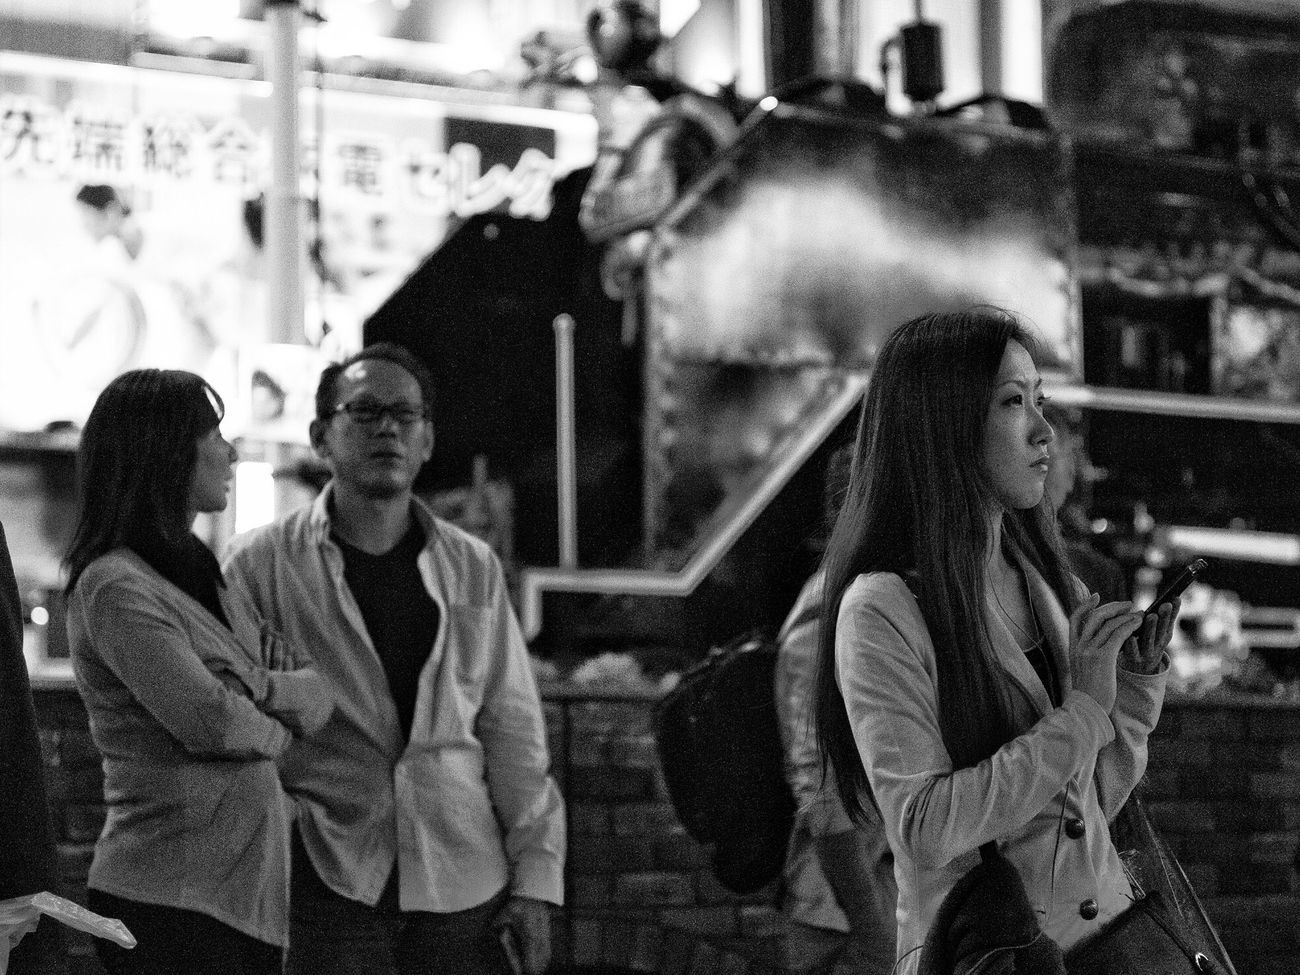 Real People Women Couple - Relationship People City Life On The Road CityWalk Streetphotography_bw B&w Street Photography Snapshot Nightphotography Night Autumn Standing Wating at Shimbashi 新橋 , Tokyo Japan